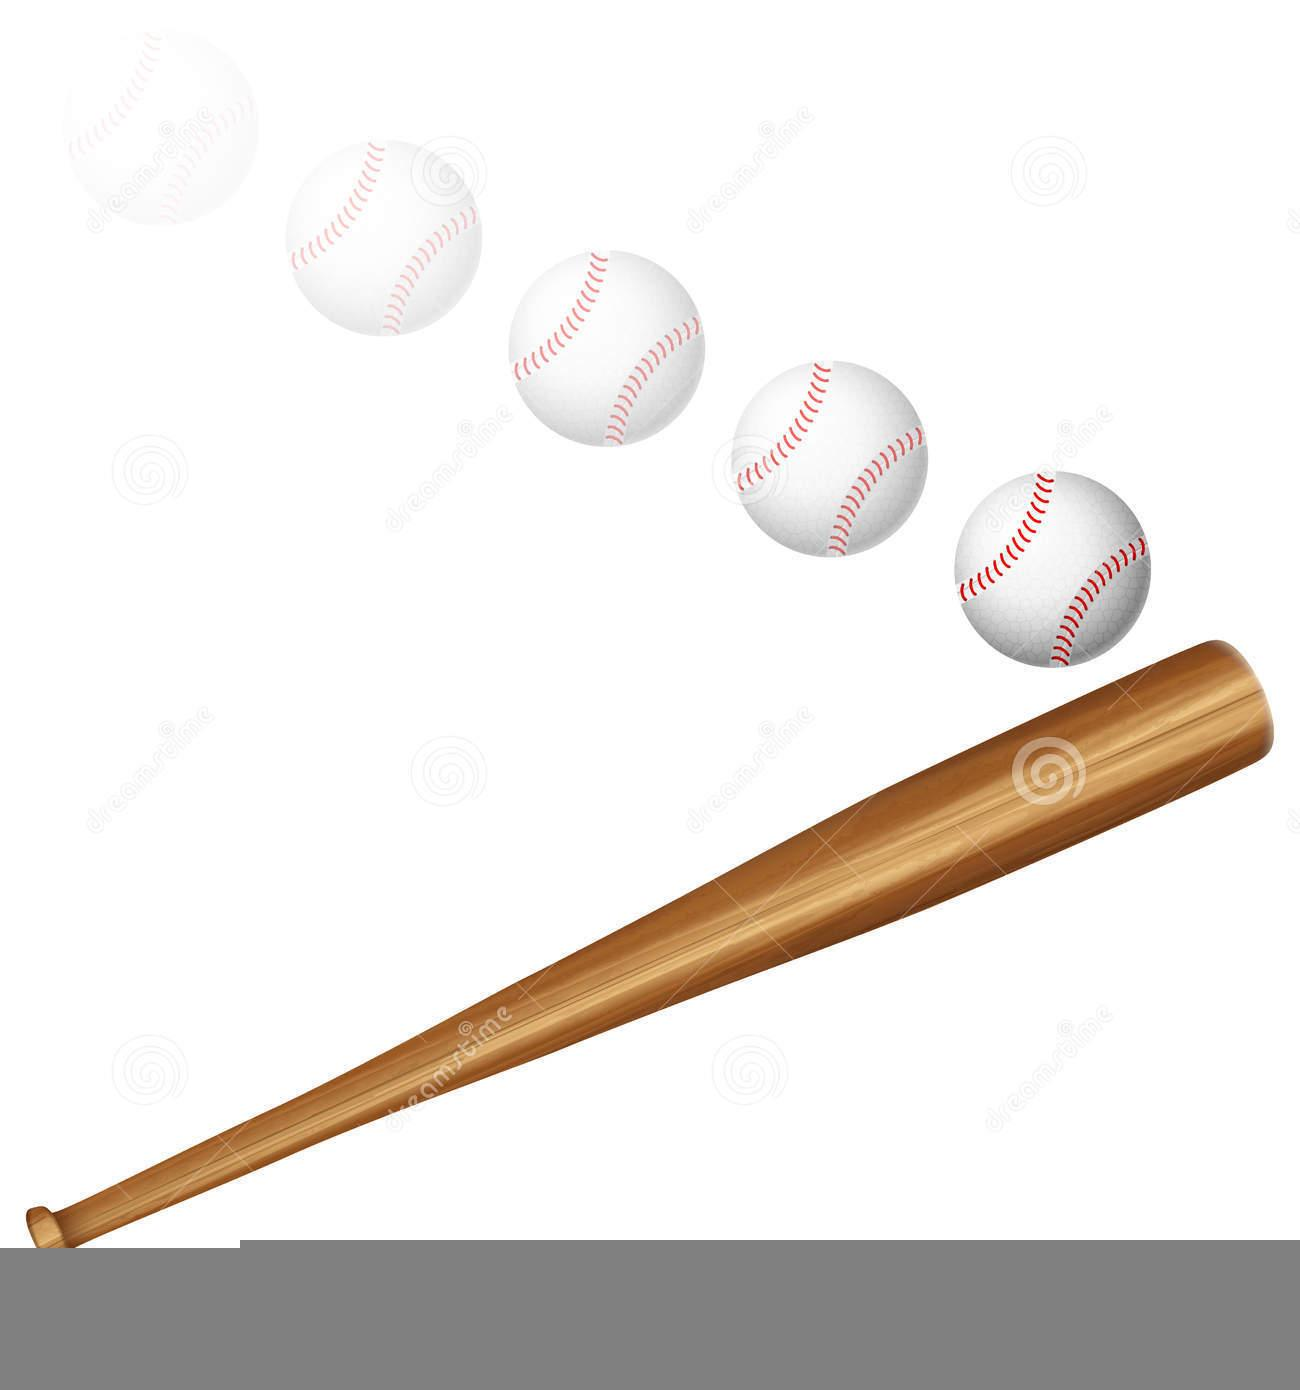 1300x1390 Baseball Bat Hitting Ball Clipart, Free Baseball Bat Hitting Ball